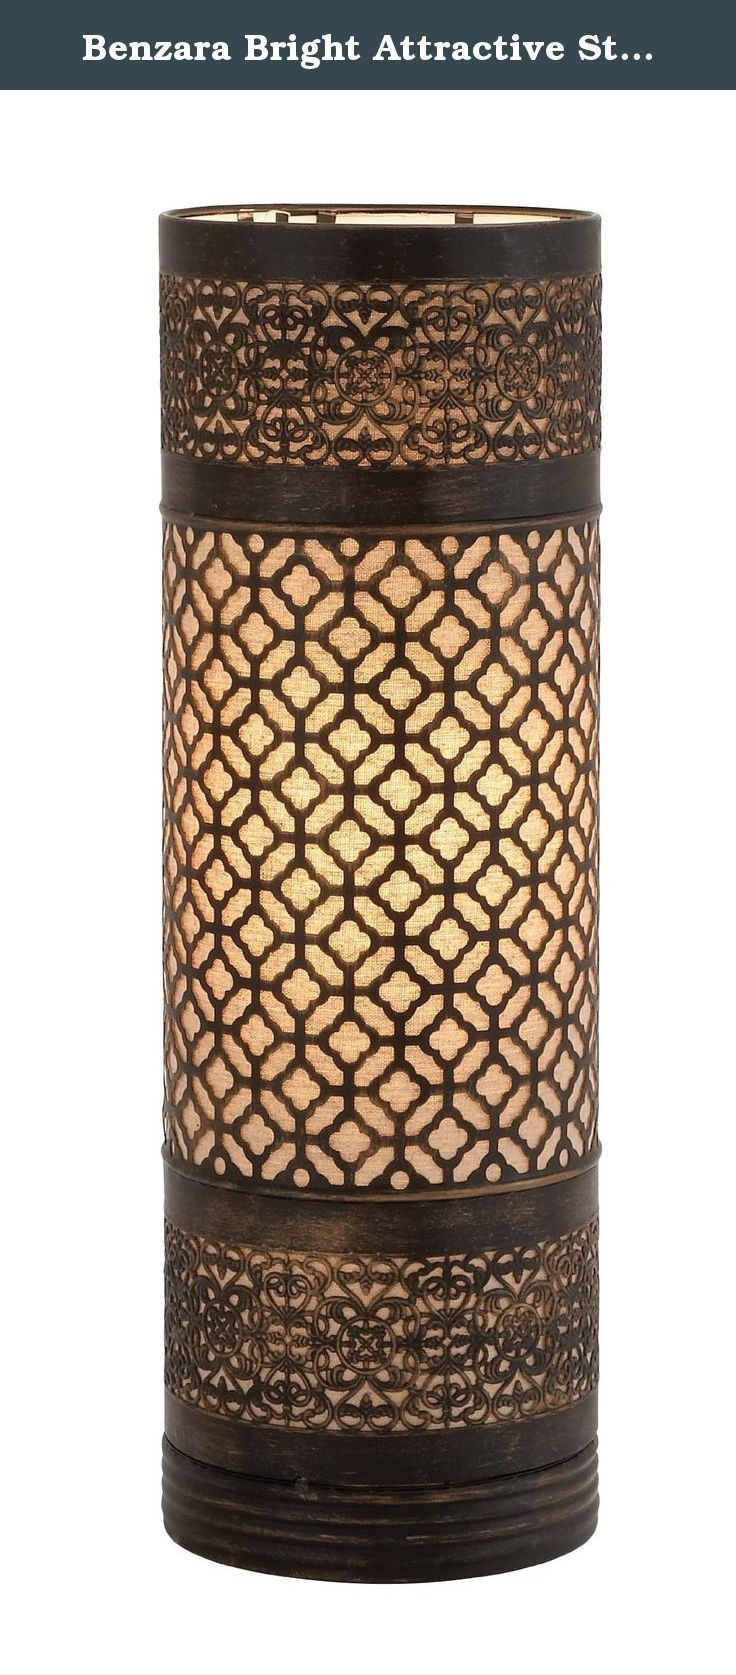 Benzara Bright Attractive Styled Metal Cylinder Table Lamp. Brighten up your space by adding this cylinder table lamp. The table lamp is cylindrical shaped made of quality metal that will last for years. This table lamp features brown designs amid of which you can add a candle of your choice and brighten up your space. The table lamp will steal the spotlight and flourish your ambience with lights. You can add this table lamp to your living space.